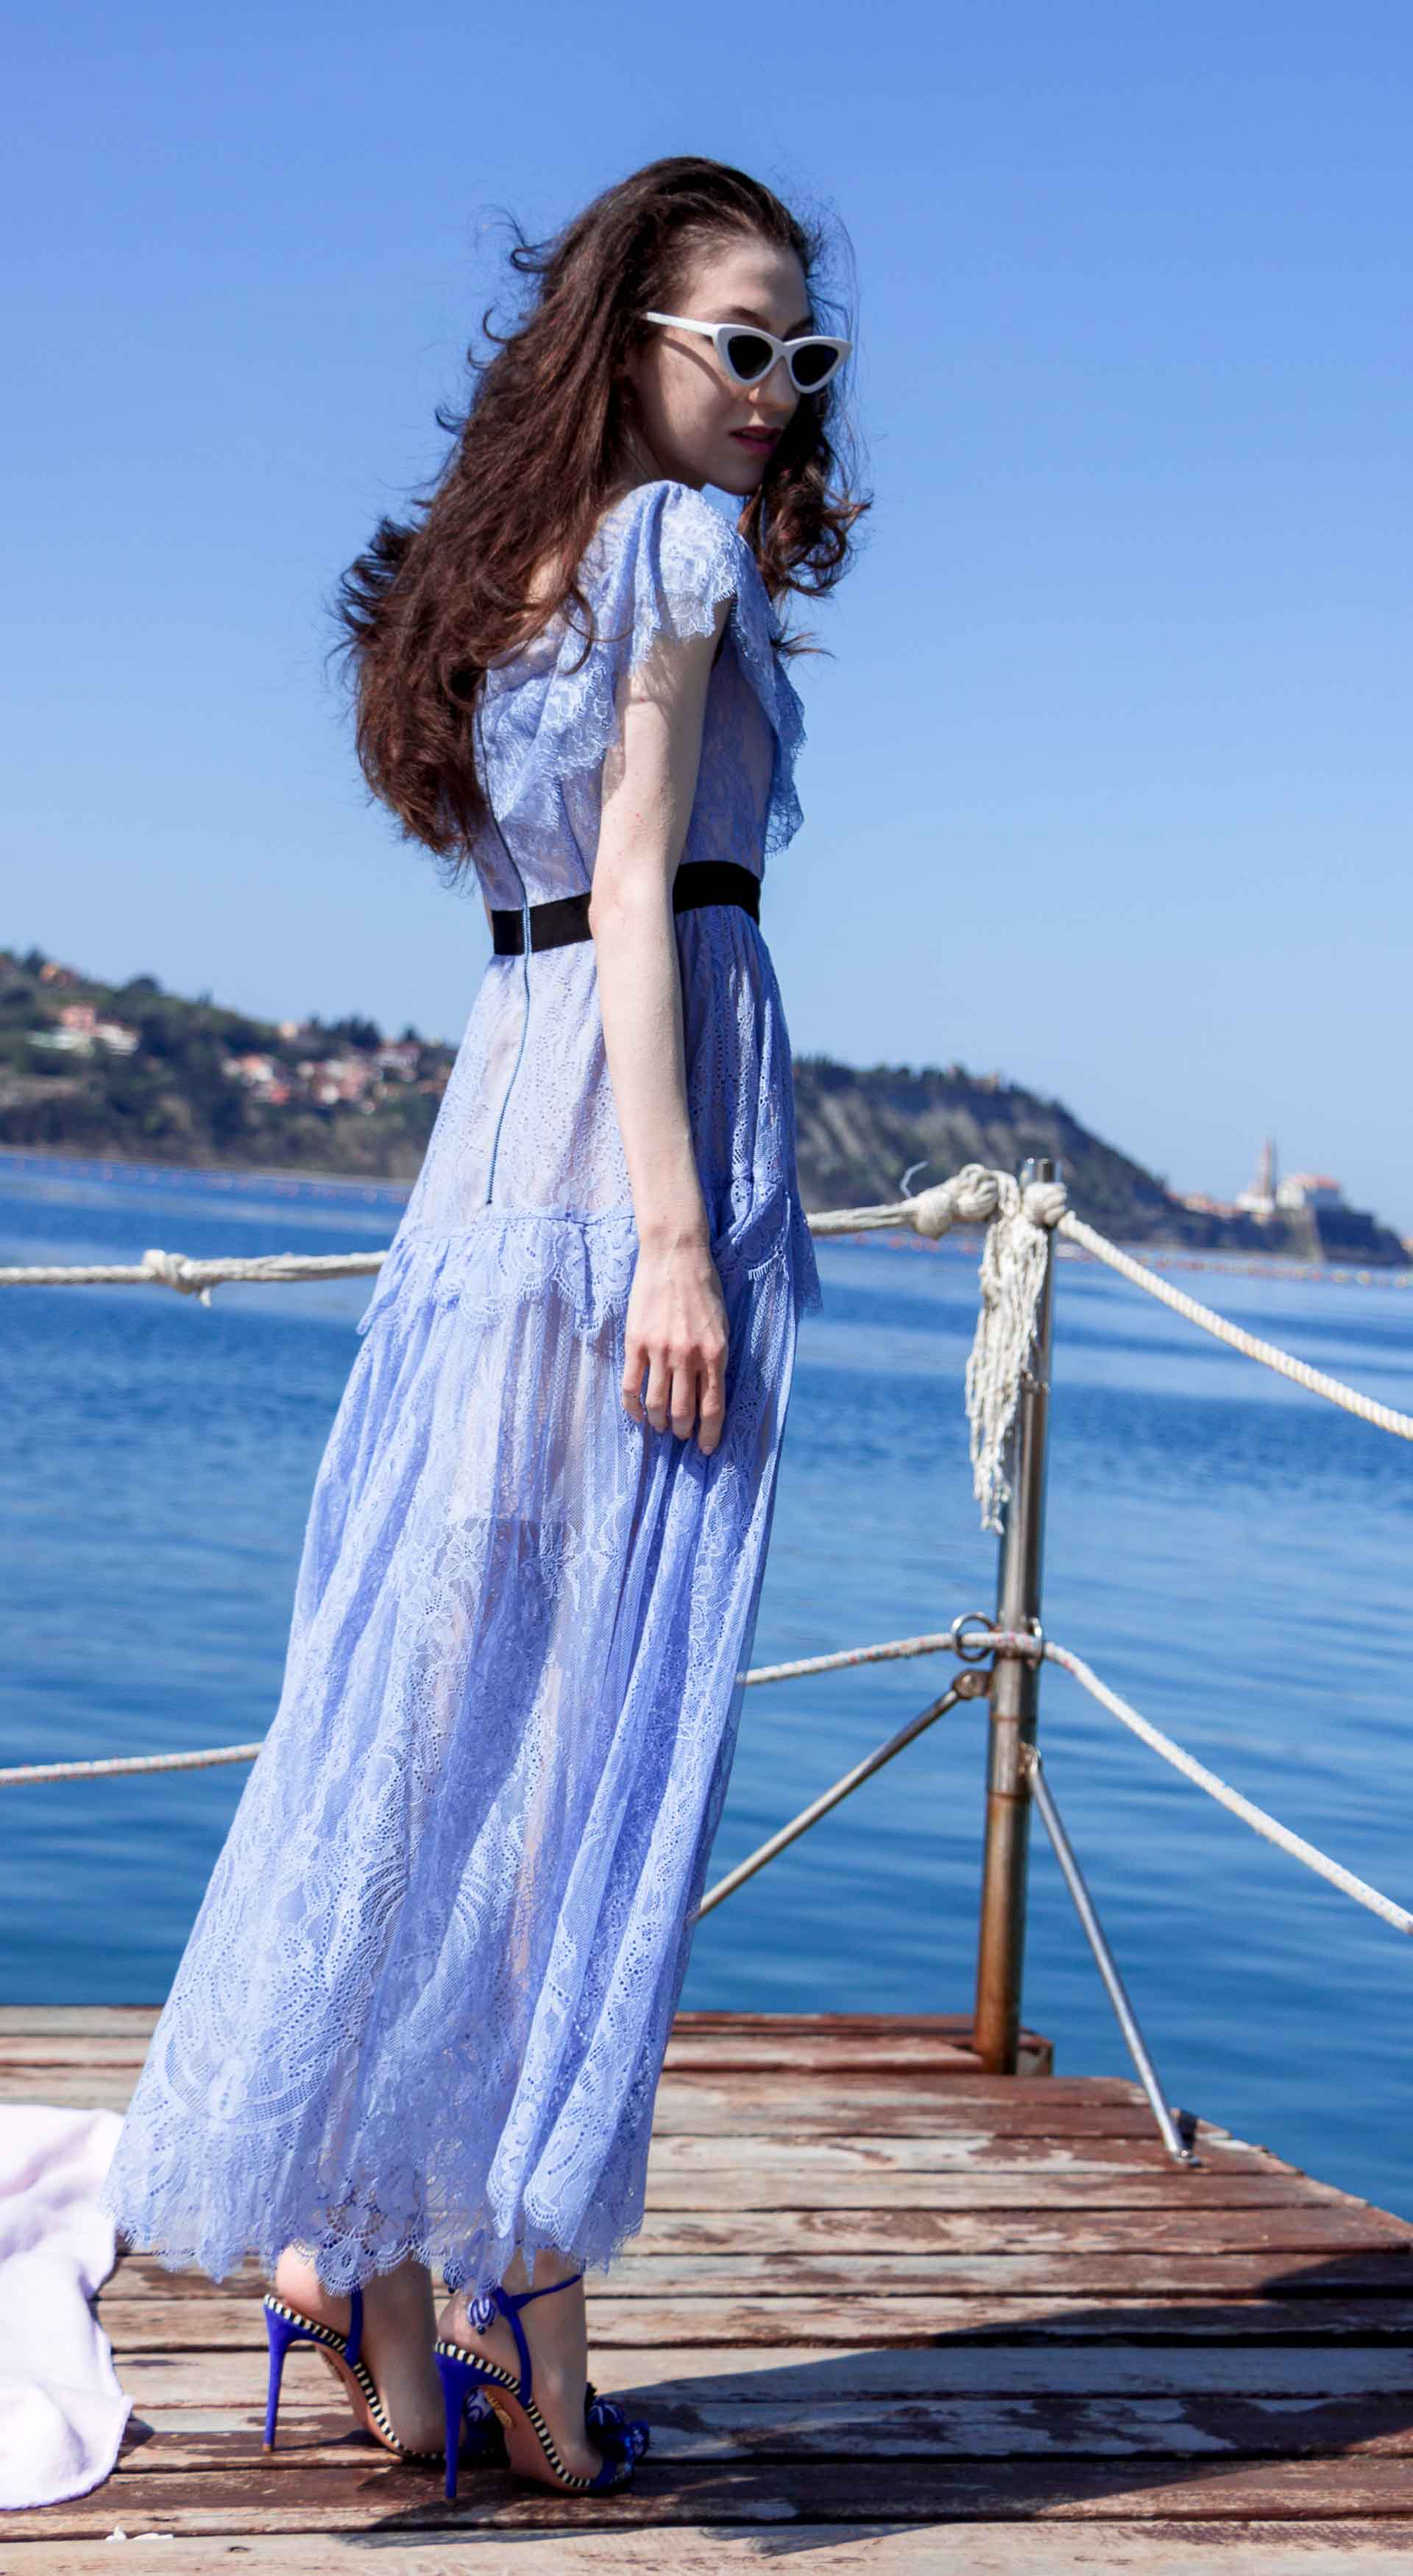 Veronika Lipar Fashion Blogger of Brunette from Wall Street wearing blue off the shoulder midi lace dress from Self-Portrait, white chain shoulder bag, Aquazzura blue pom pom tassels sandals, white Lolita cat-eye sunglasses for romantic summer date at the seaside